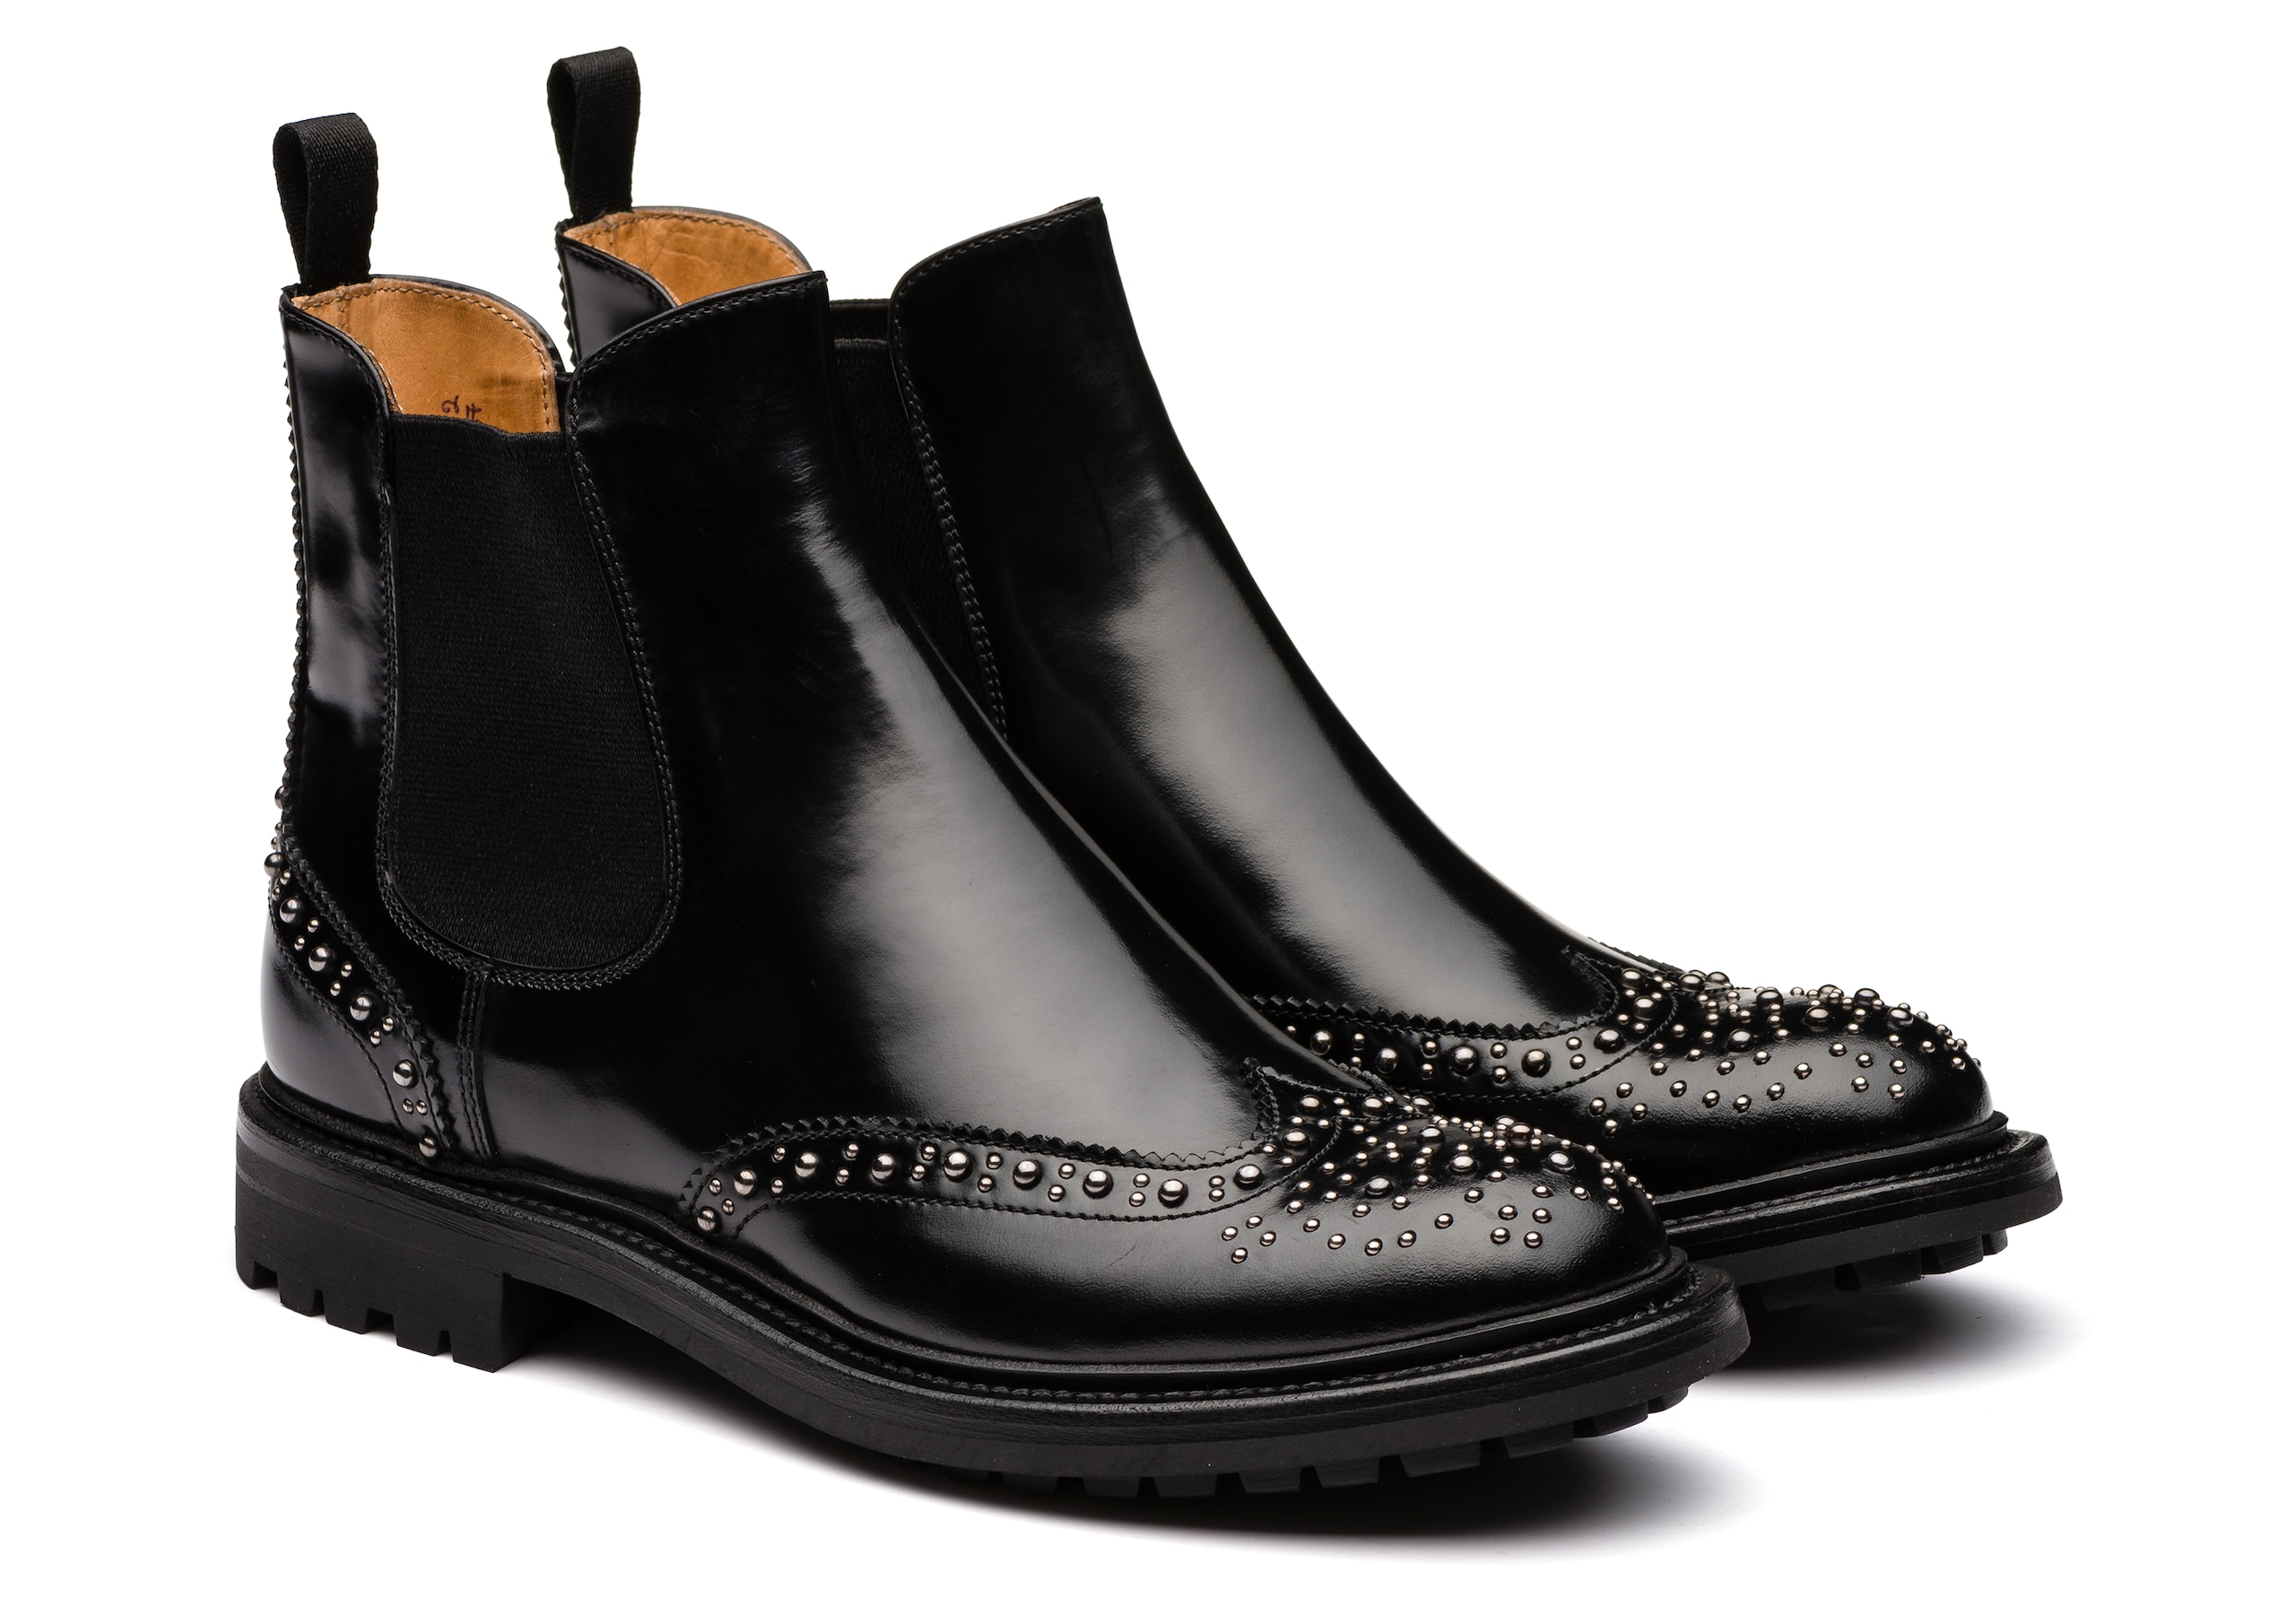 Aura met. 2 Church's Polished Fumè Chelsea Boot Stud Black